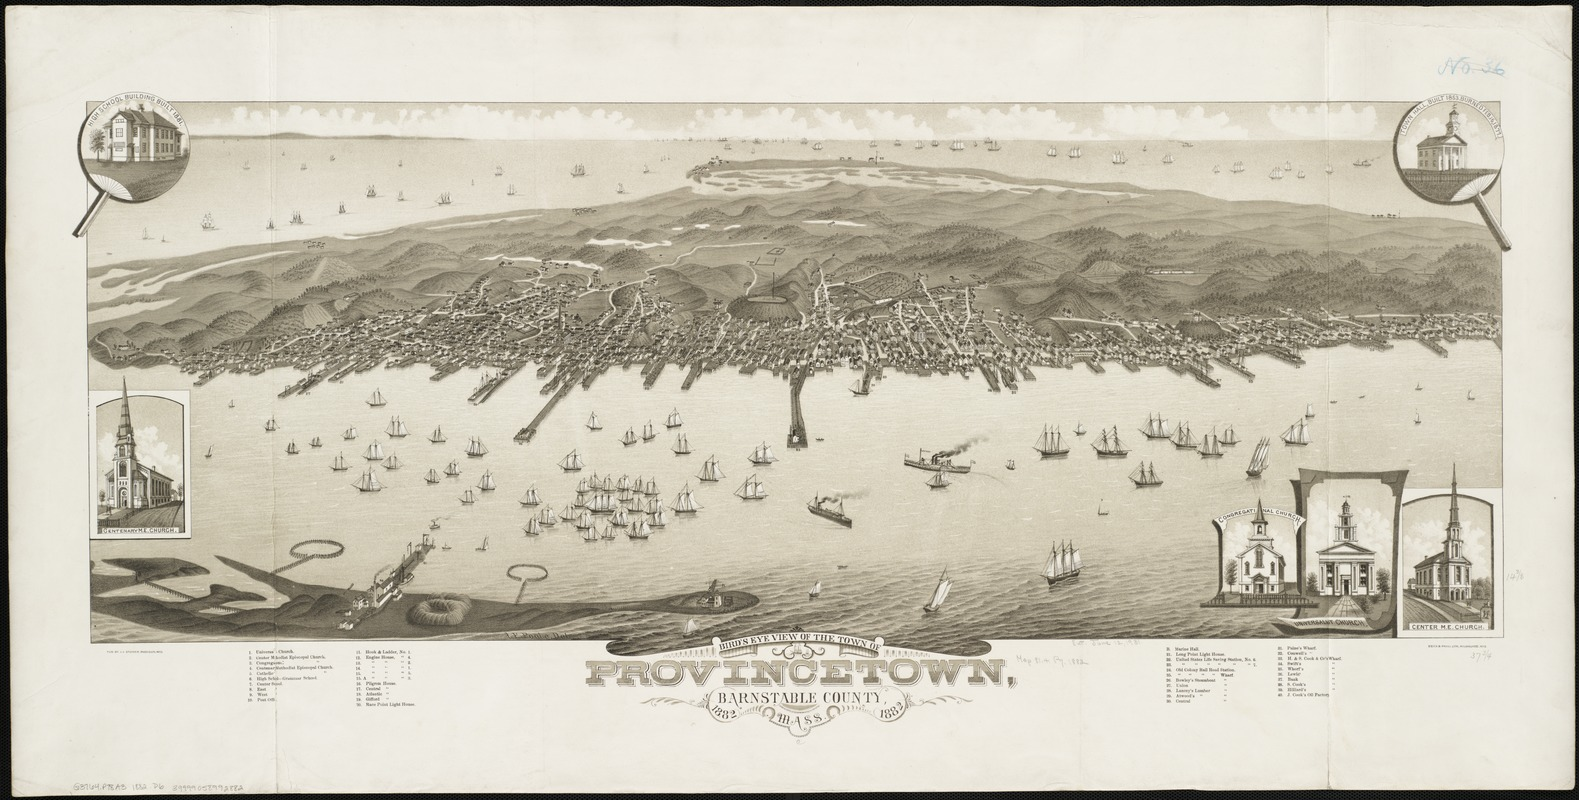 Bird's eye view of the town of Provincetown, Barnstable County, Mass